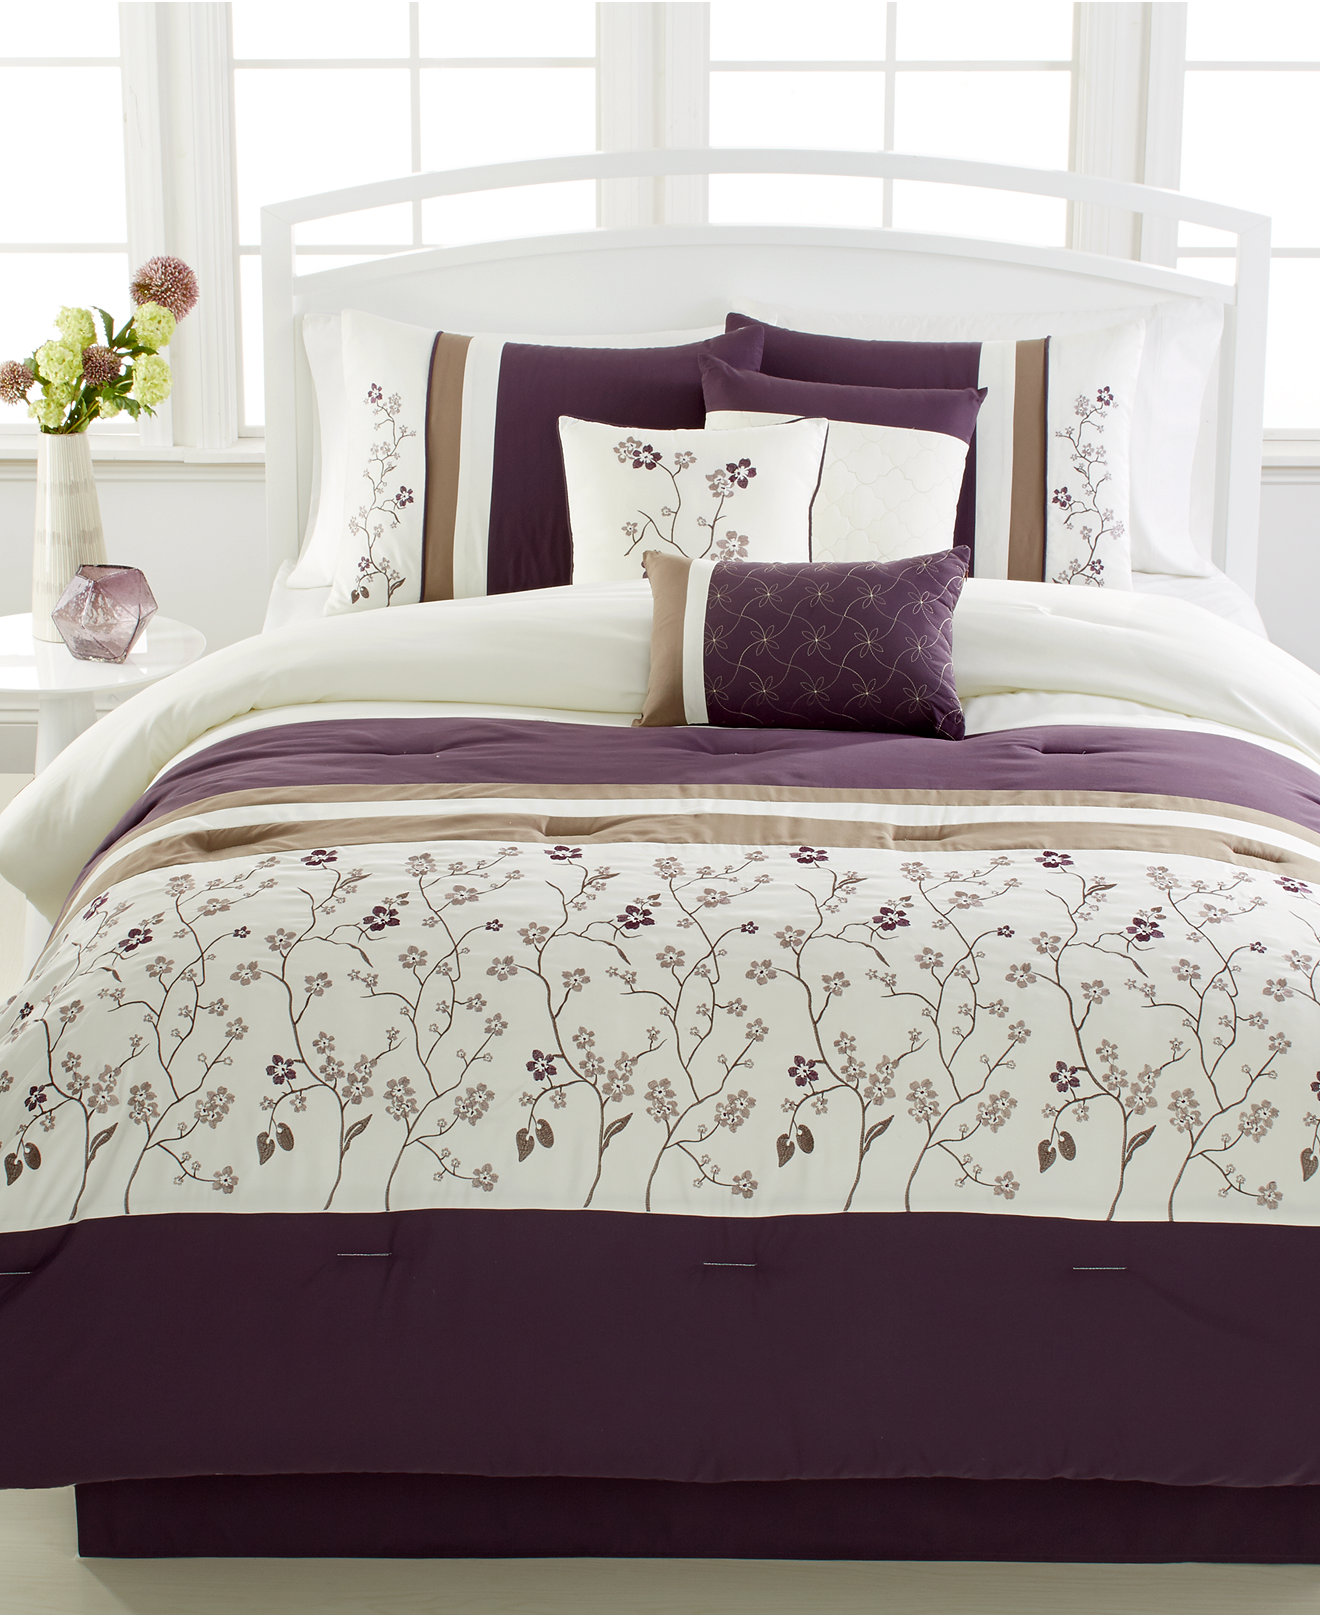 Extraordinary comforters sets for bedroom design with queen comforter sets